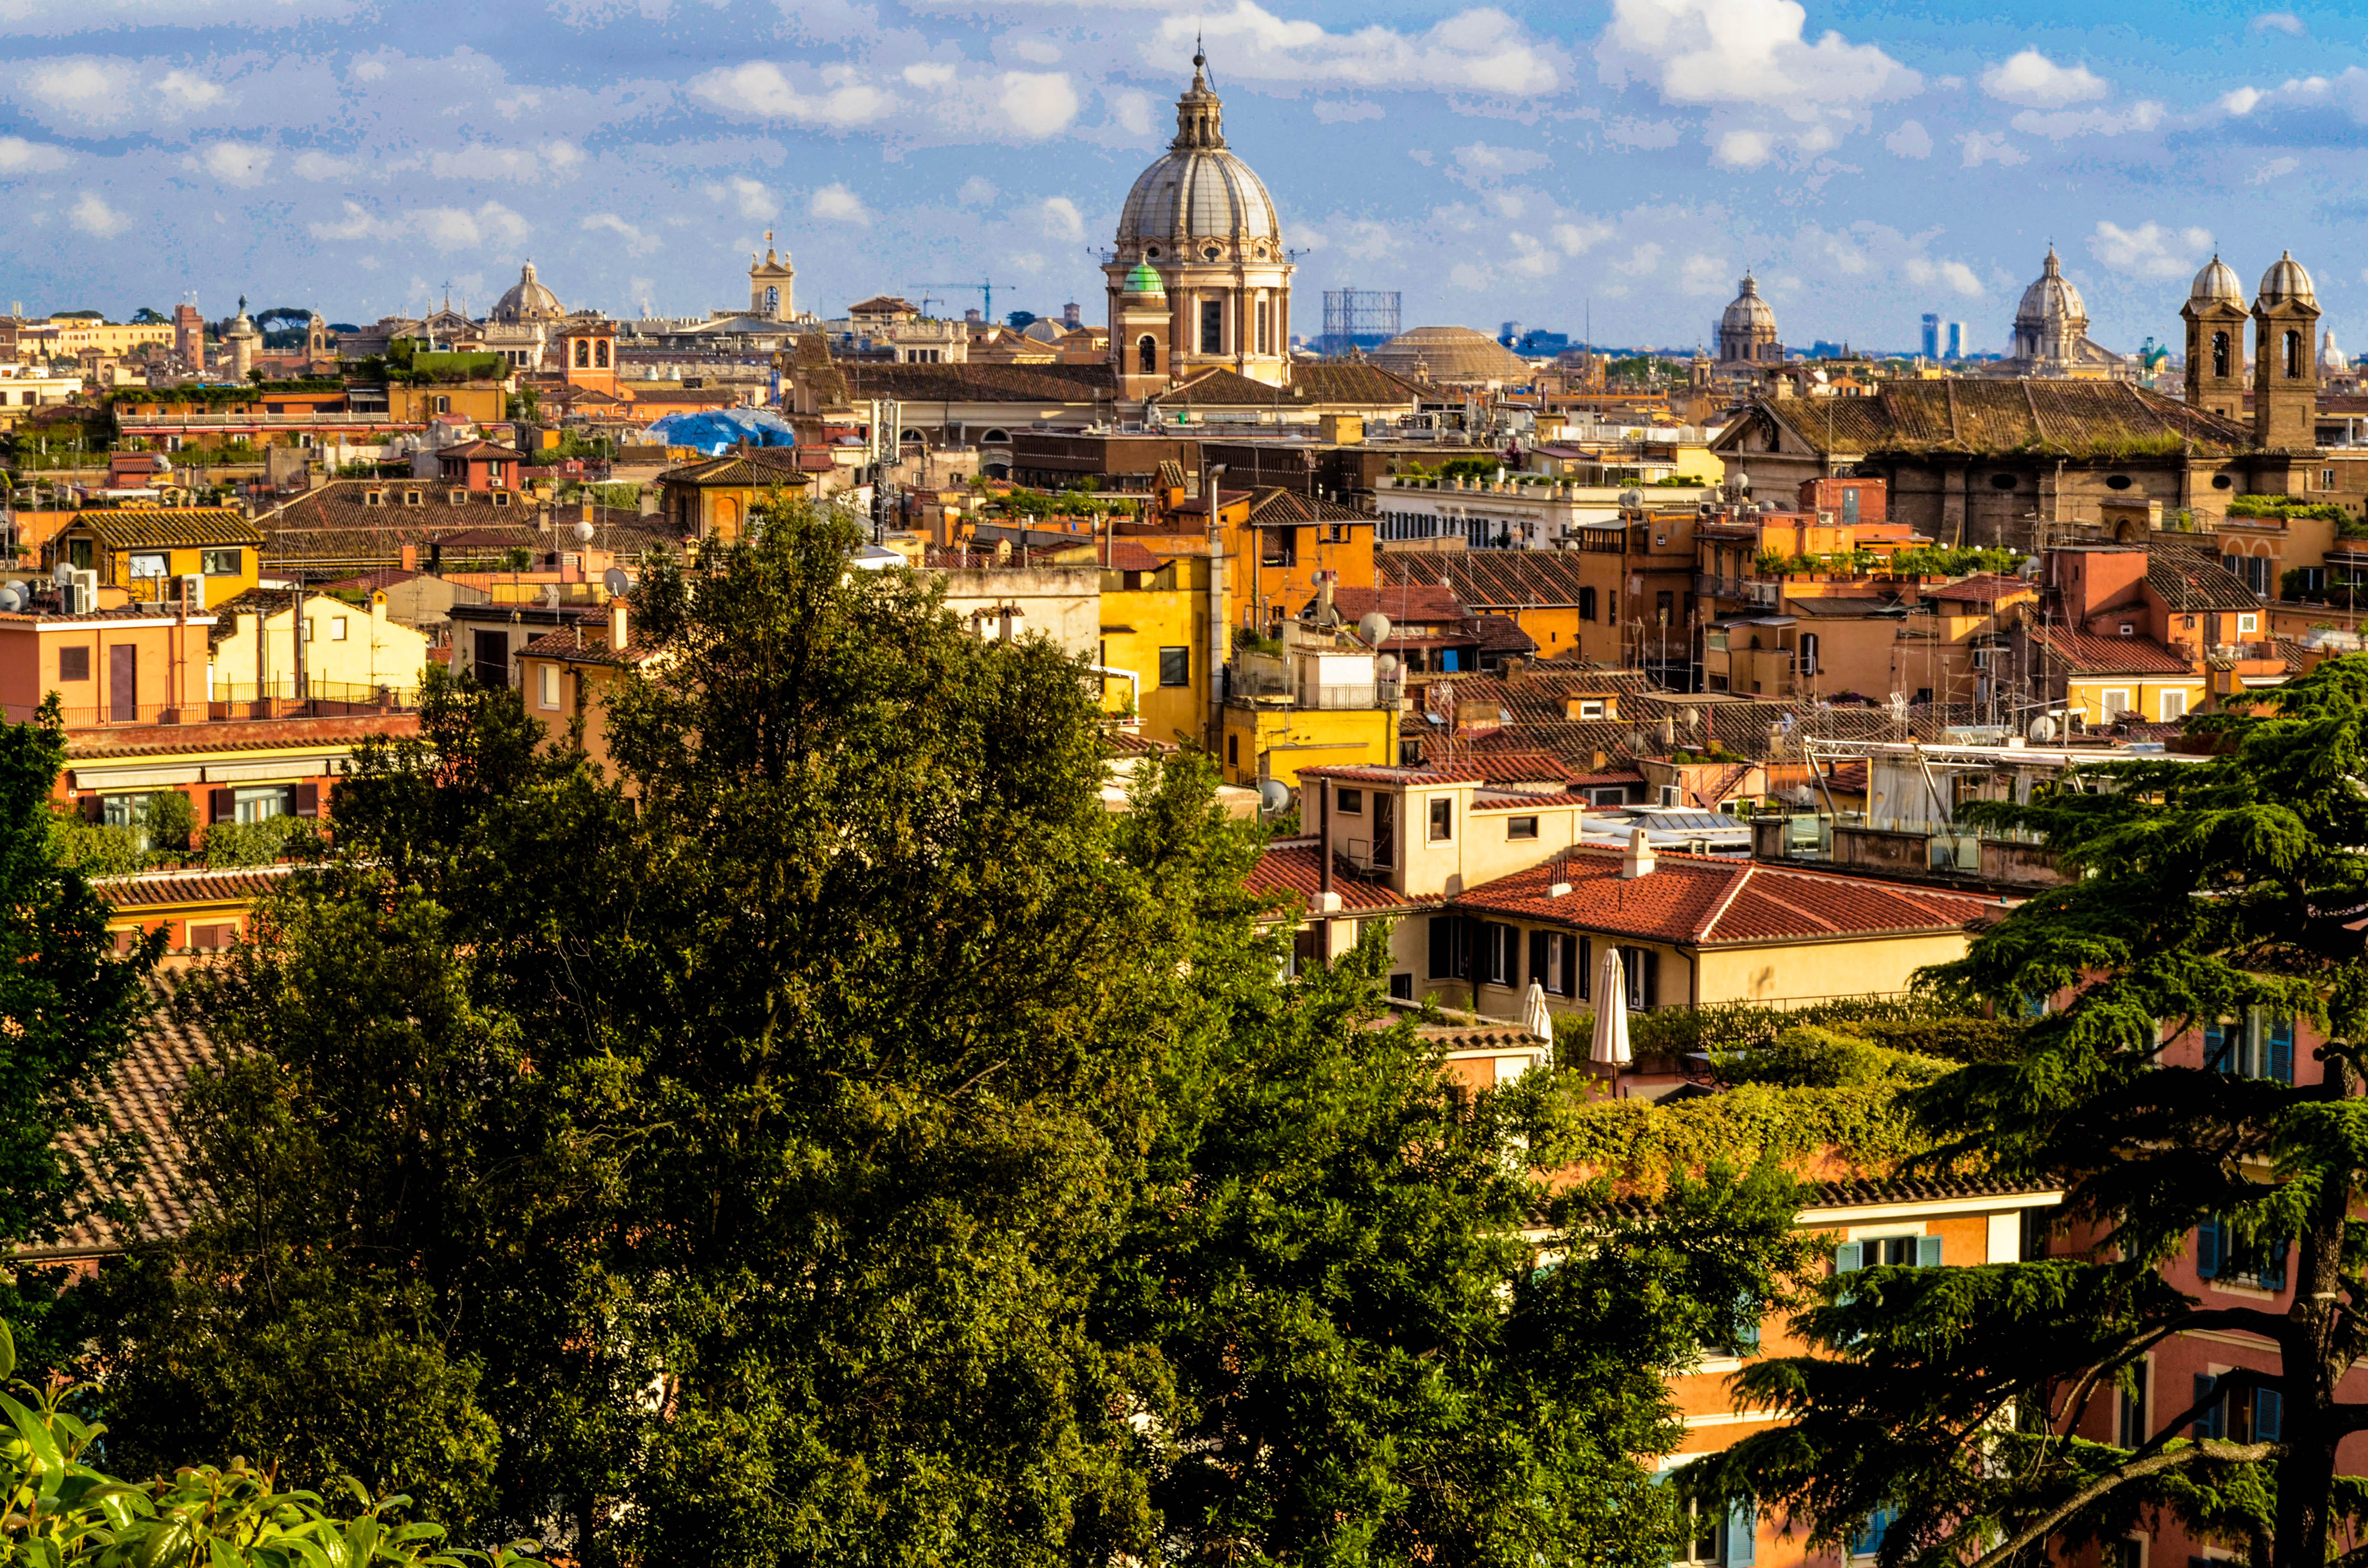 Wonderful view of Rome seen from Villa Borghese